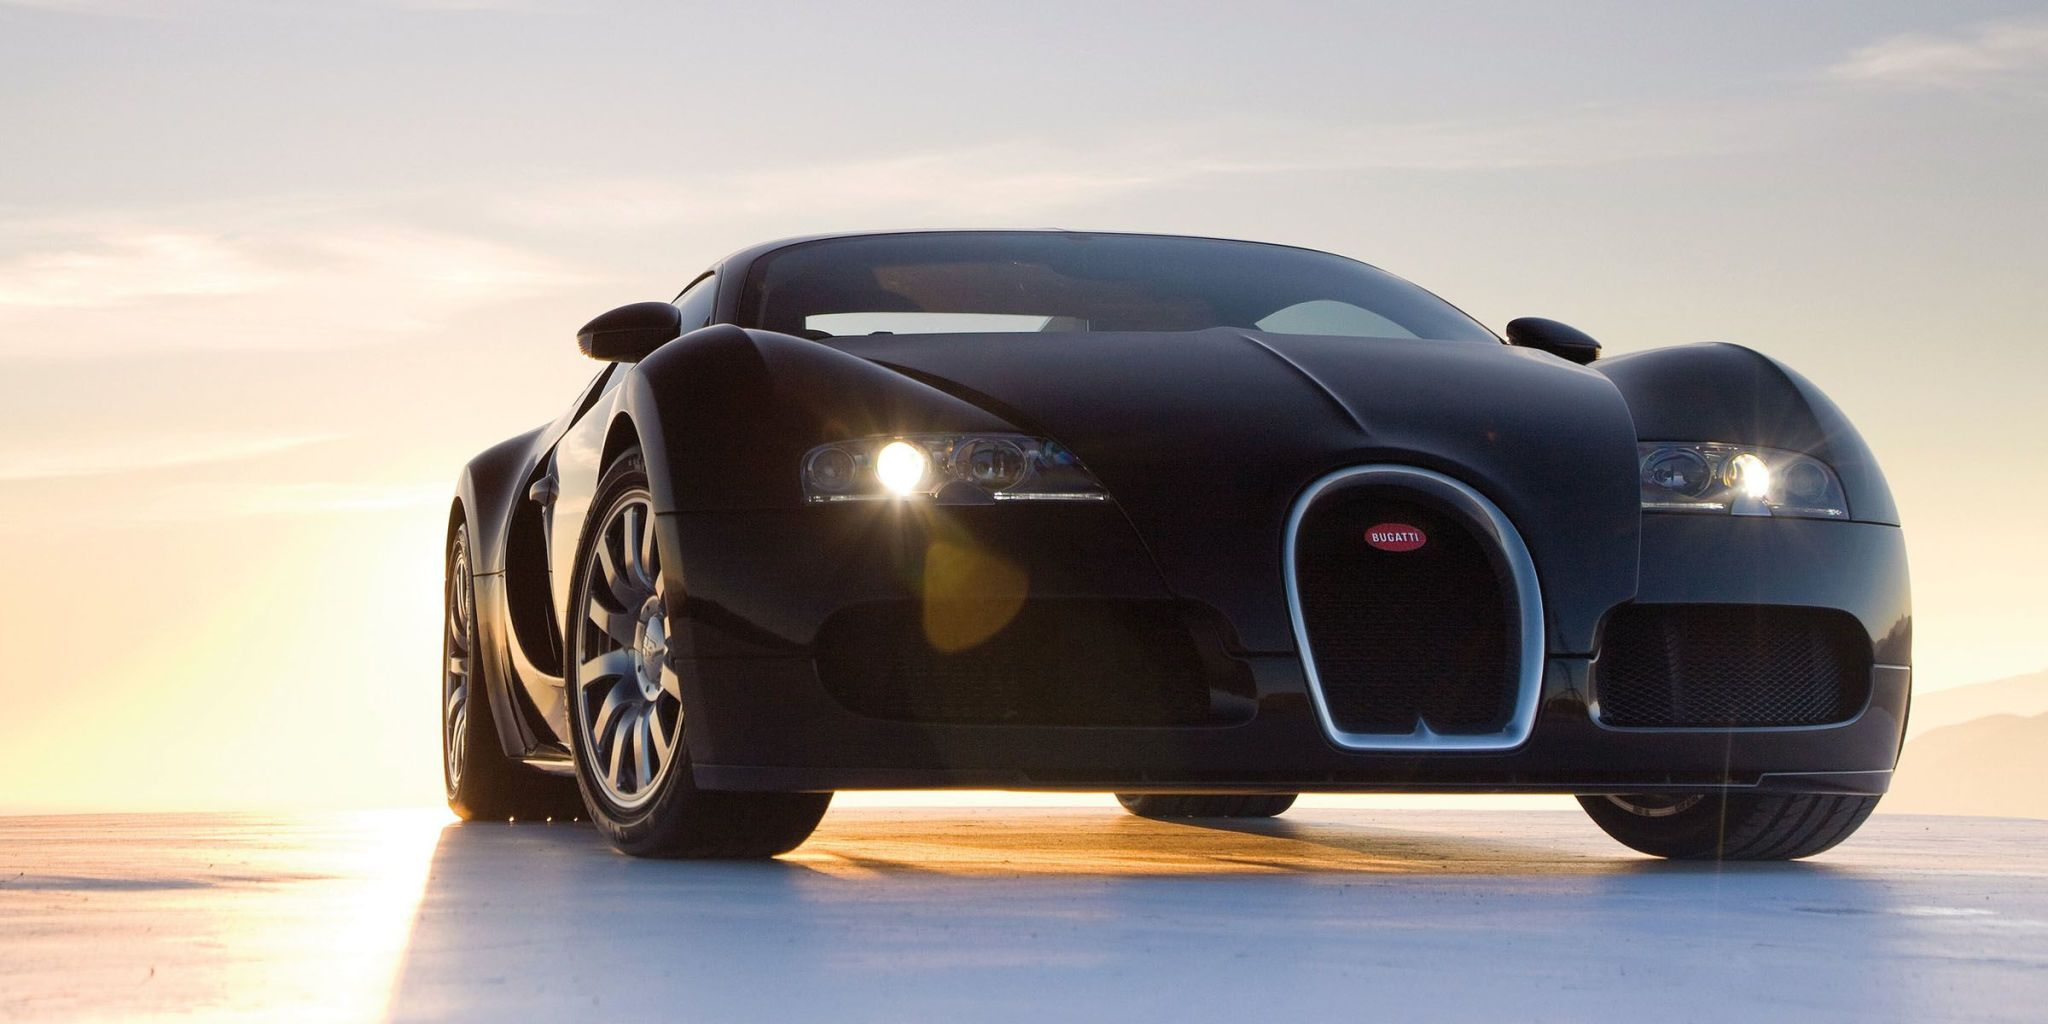 Report: Bugatti Veyron-Successor Will Make 1,500 HP, Cost $2.5 Million